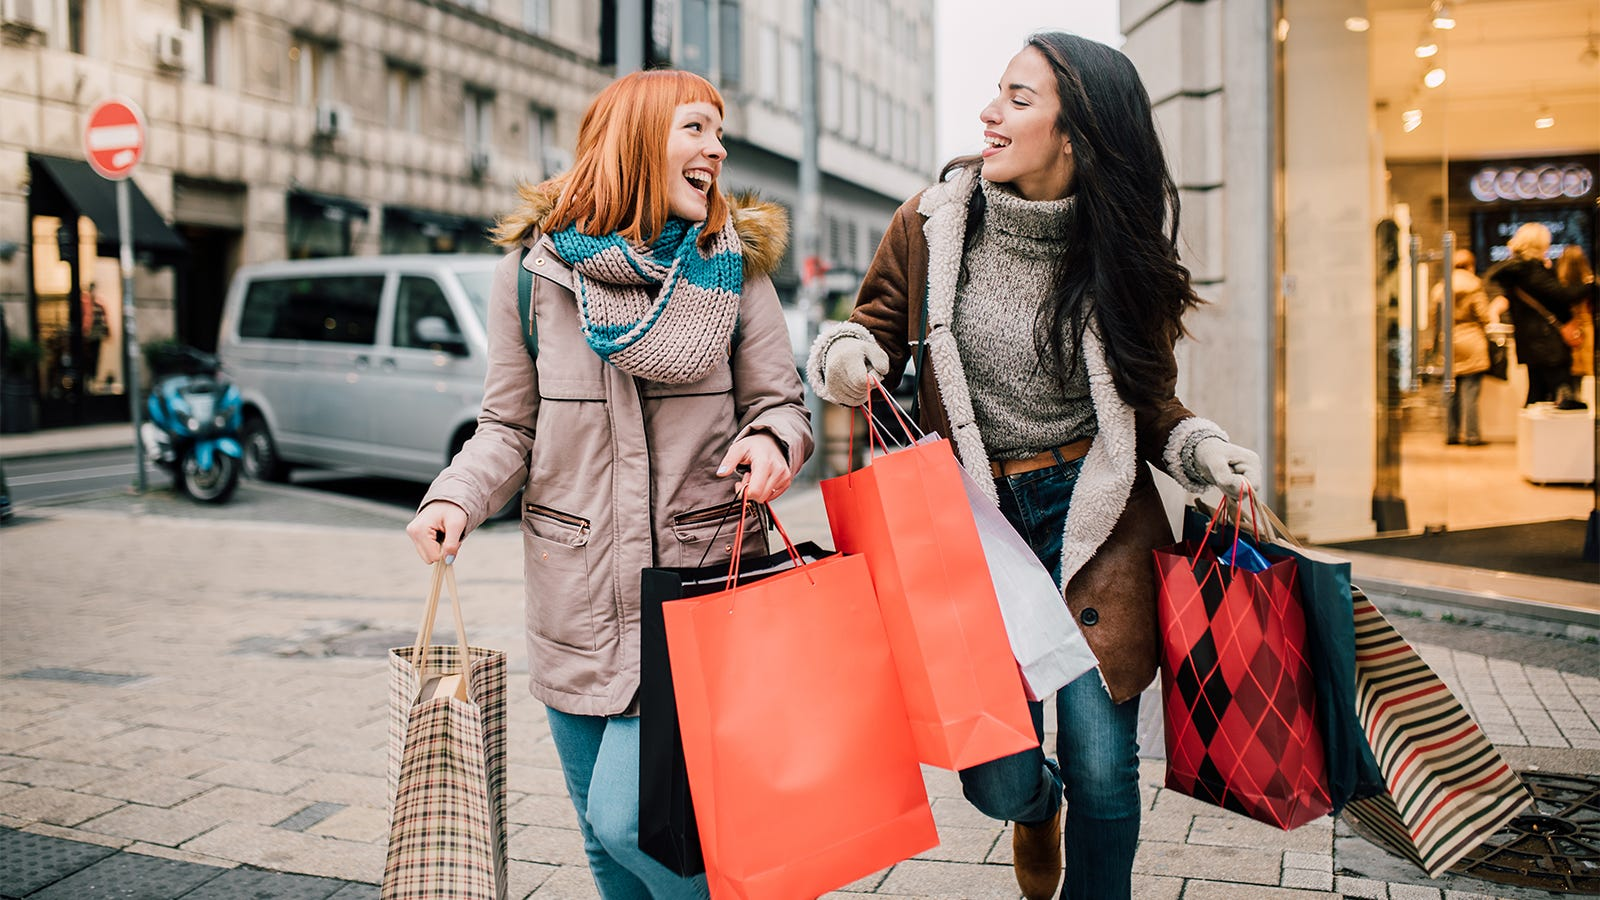 Cyber Monday 2019 The best Black Friday deals on clothes